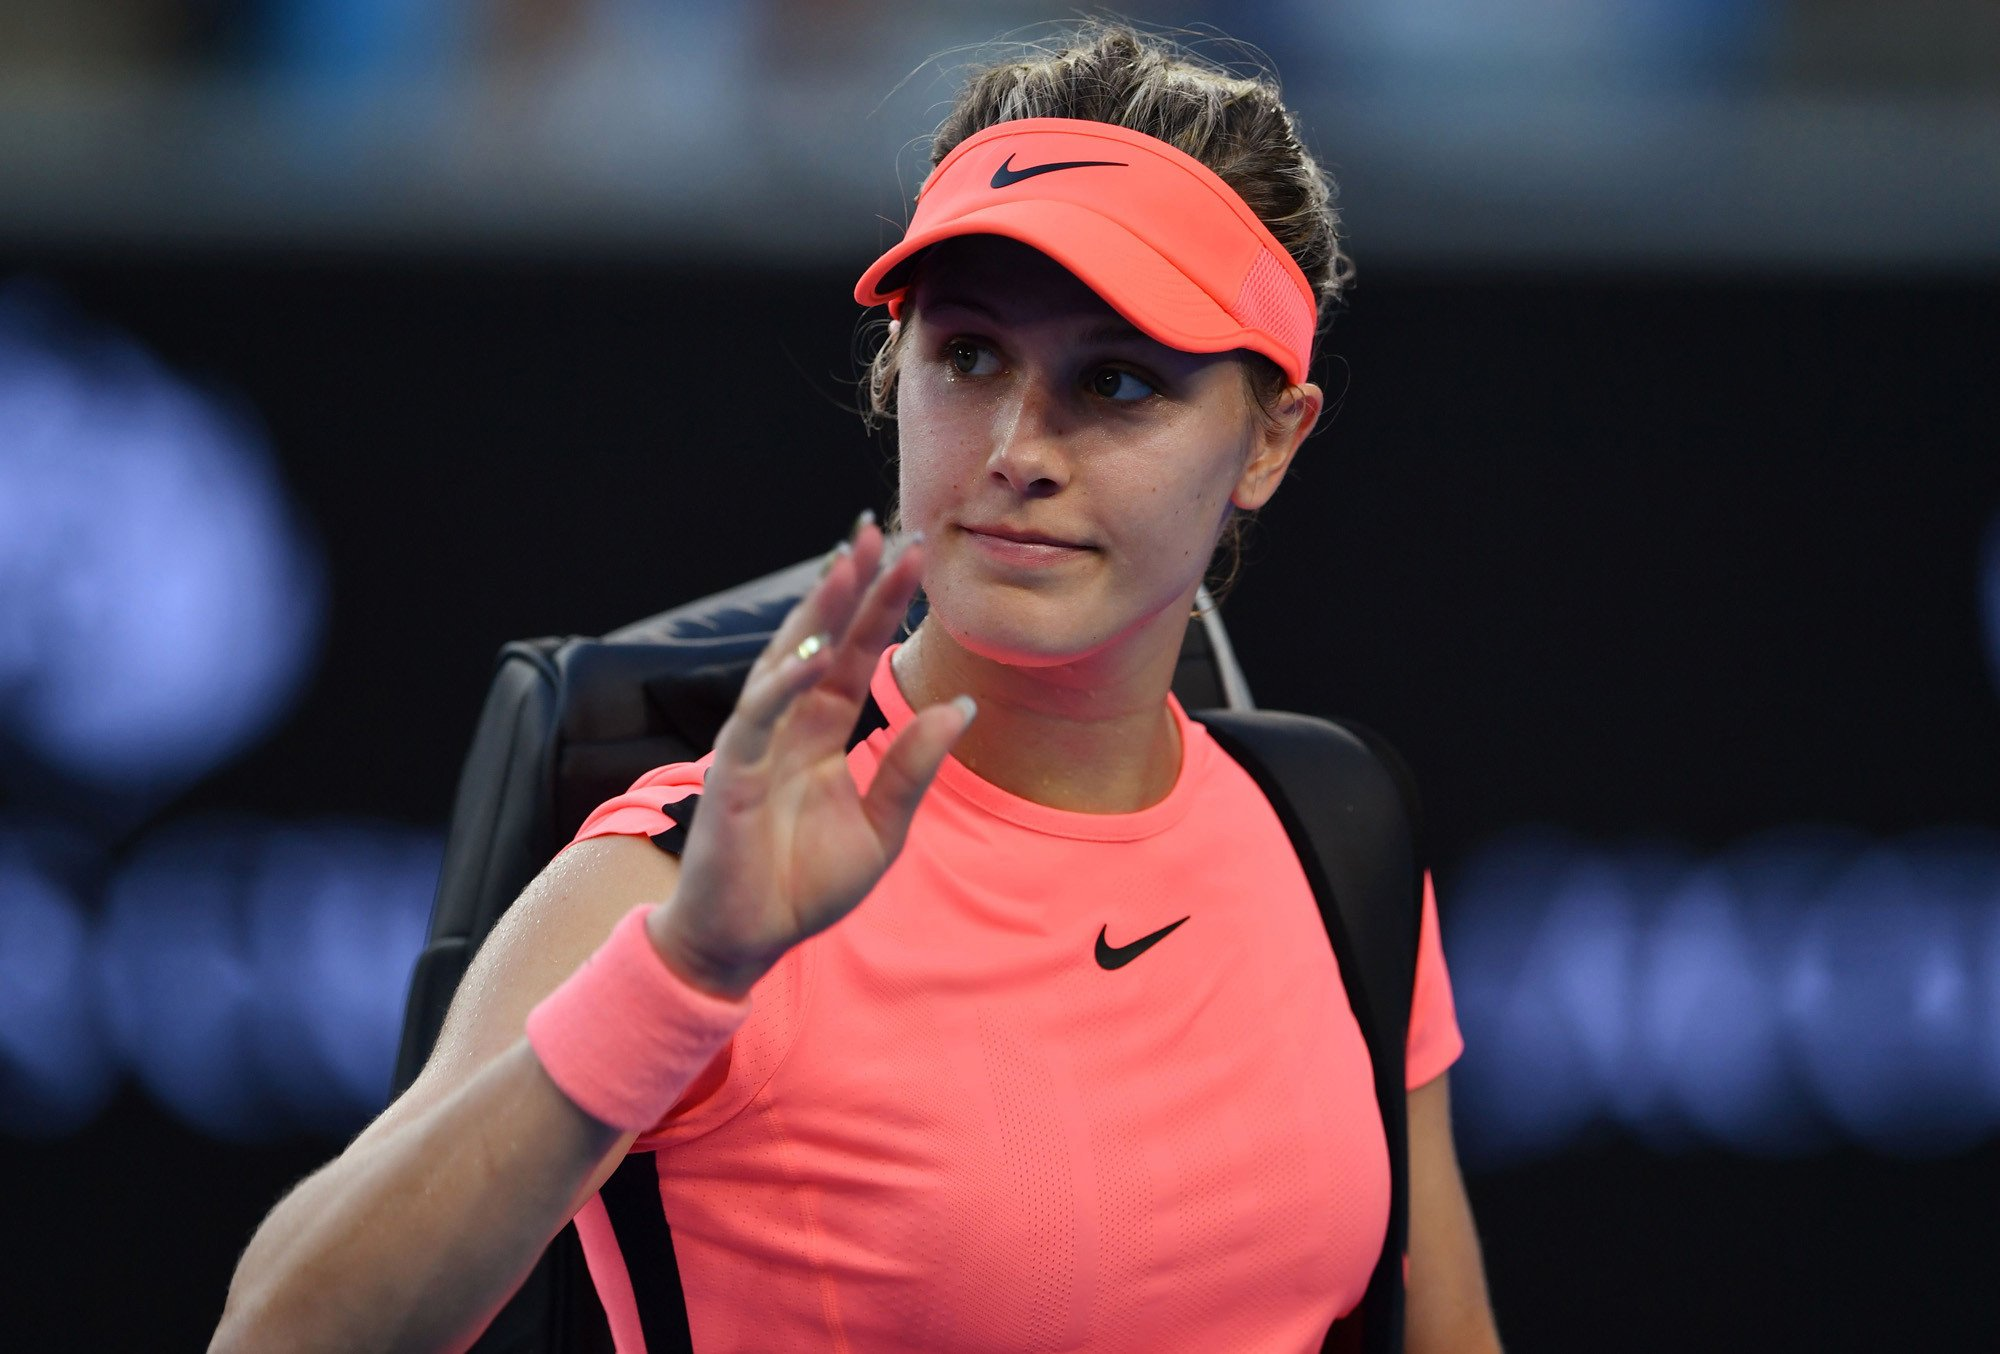 Eugenie Bouchard's struggles are becoming very costly